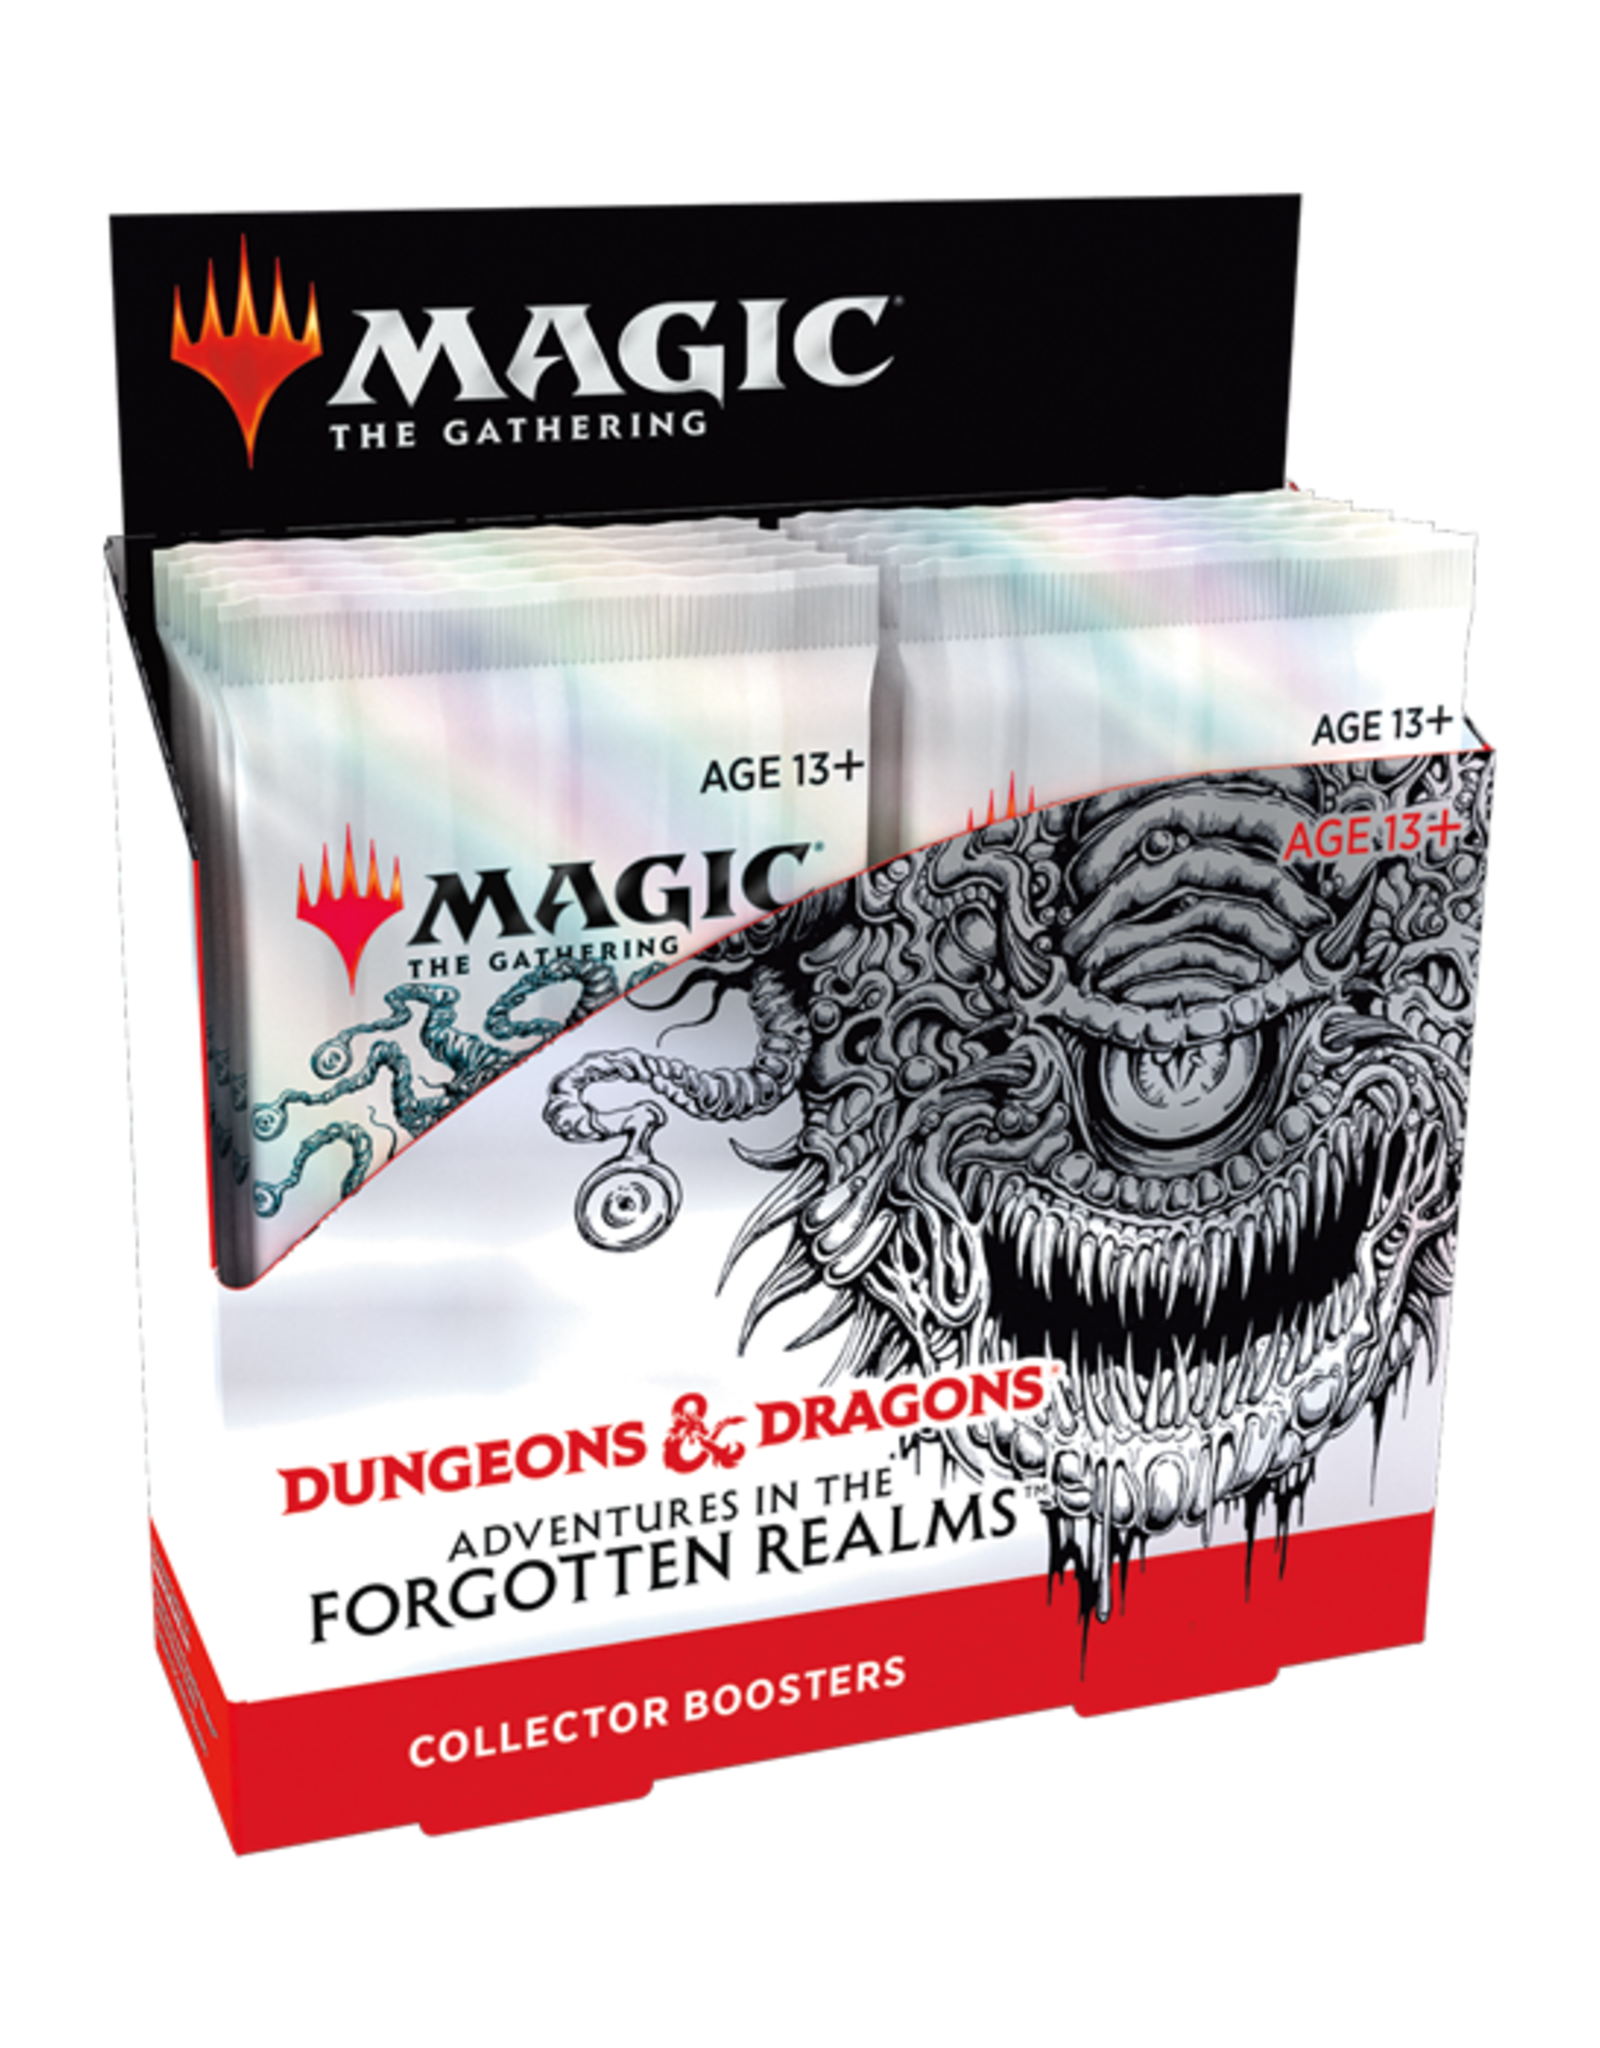 Magic: The Gathering Magic: The Gathering - Adventures in the Forgotten Realms - Collector Booster Box